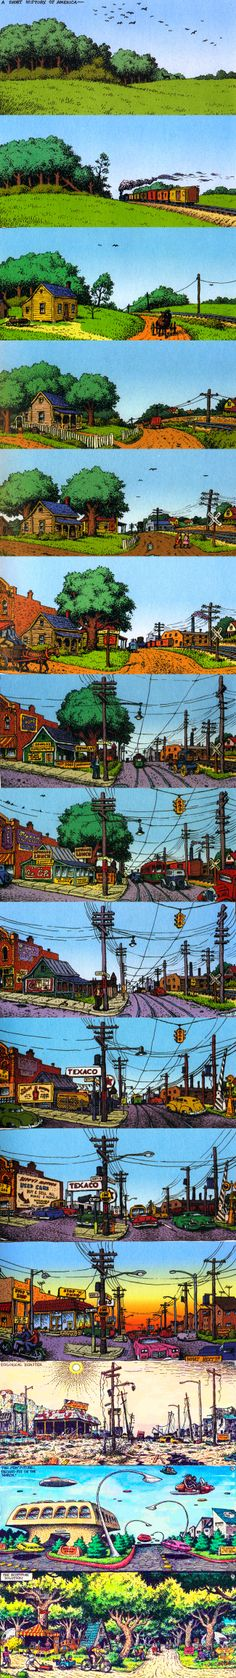 There is a price to pay for progress and a lesson never learned. (artist Robert Crumb)